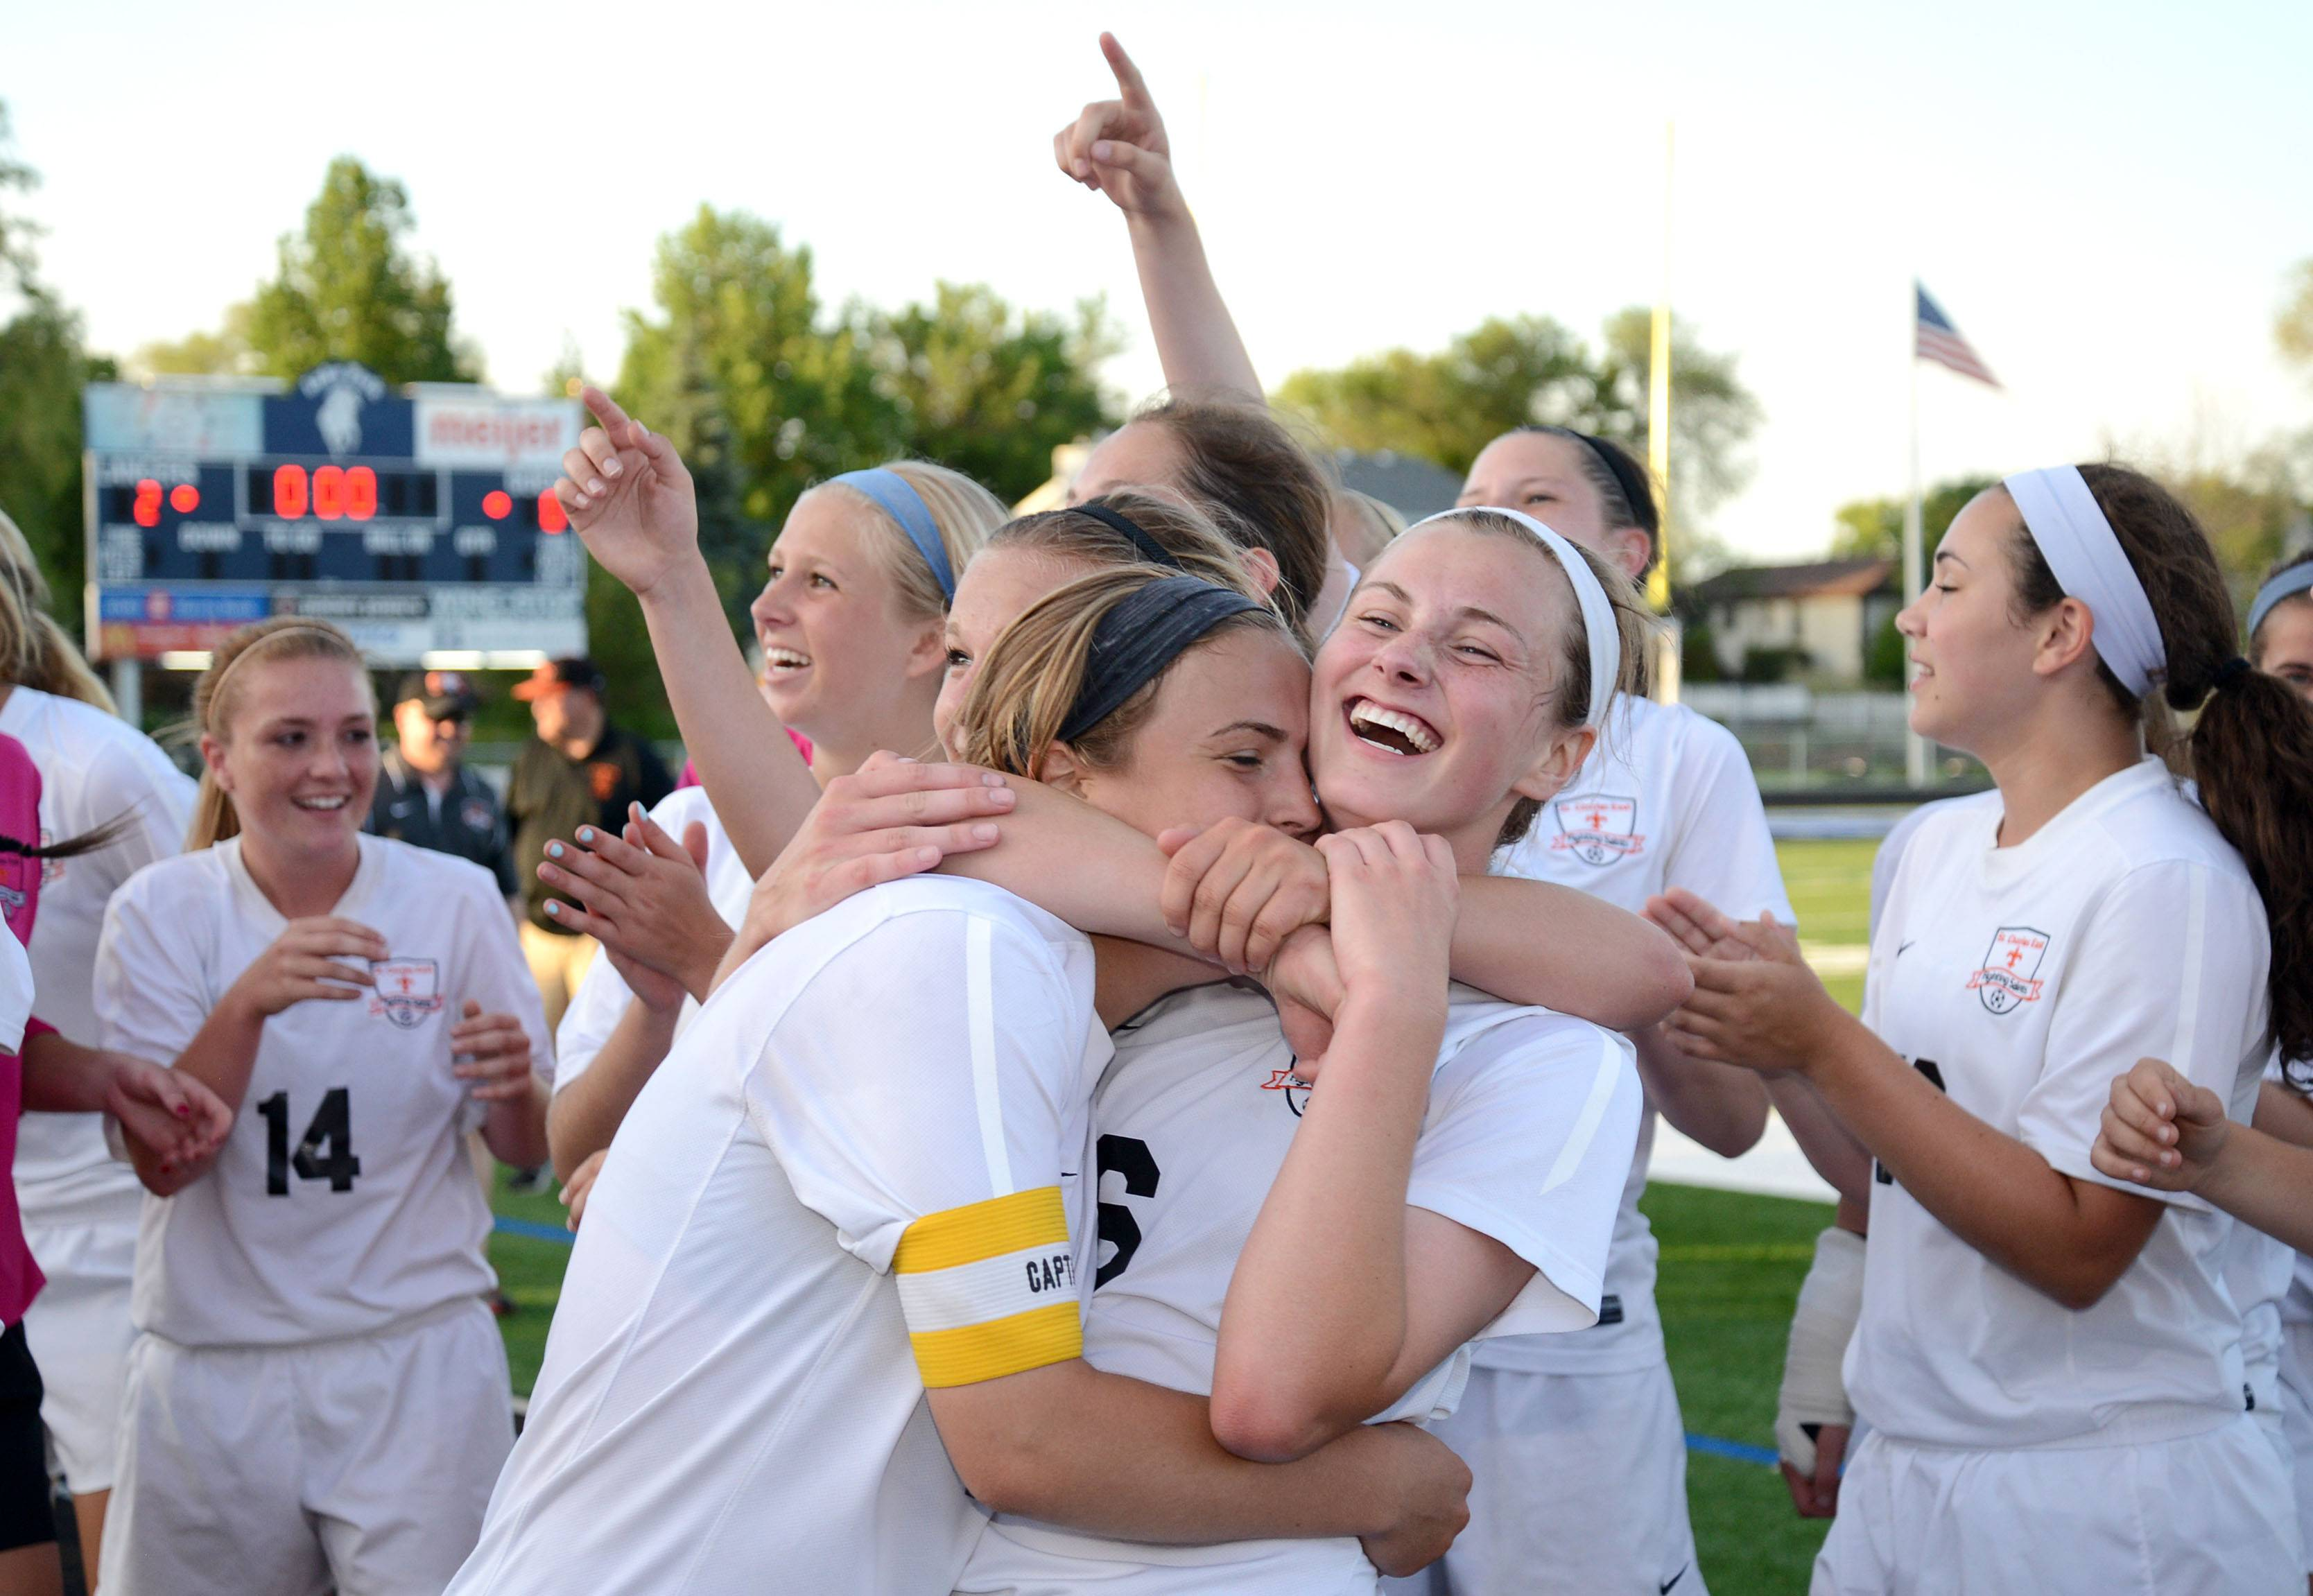 St. Charles East's Anna Corirossi, left, and Kelli Santo Paolo celebrate their win over Huntley in the Class 3A girls soccer supersectional at Lake Park High School in Roselle on Tuesday.